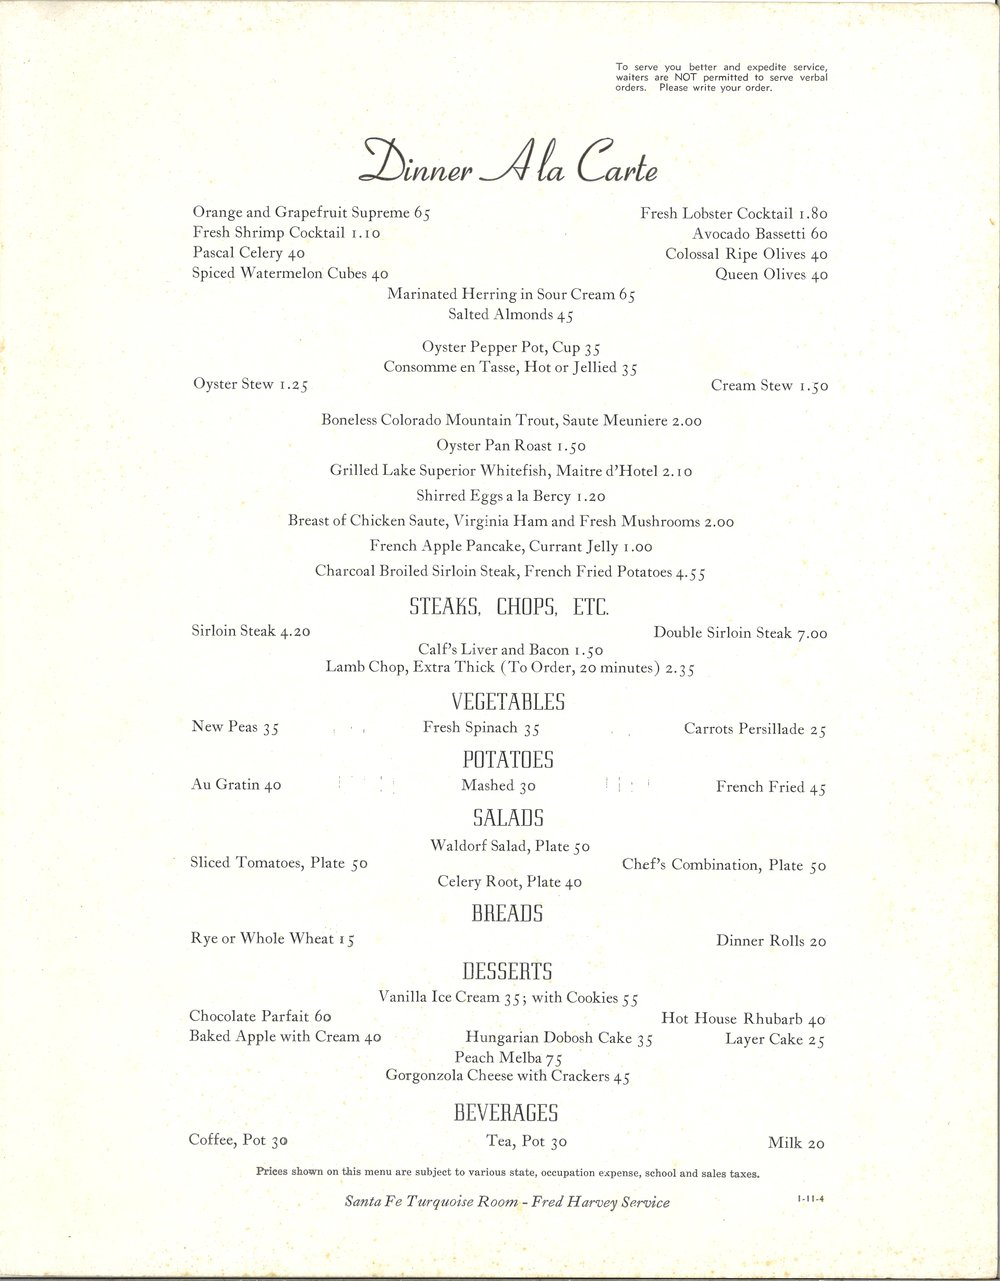 Turquoise Room Dinner Menu 2.jpg